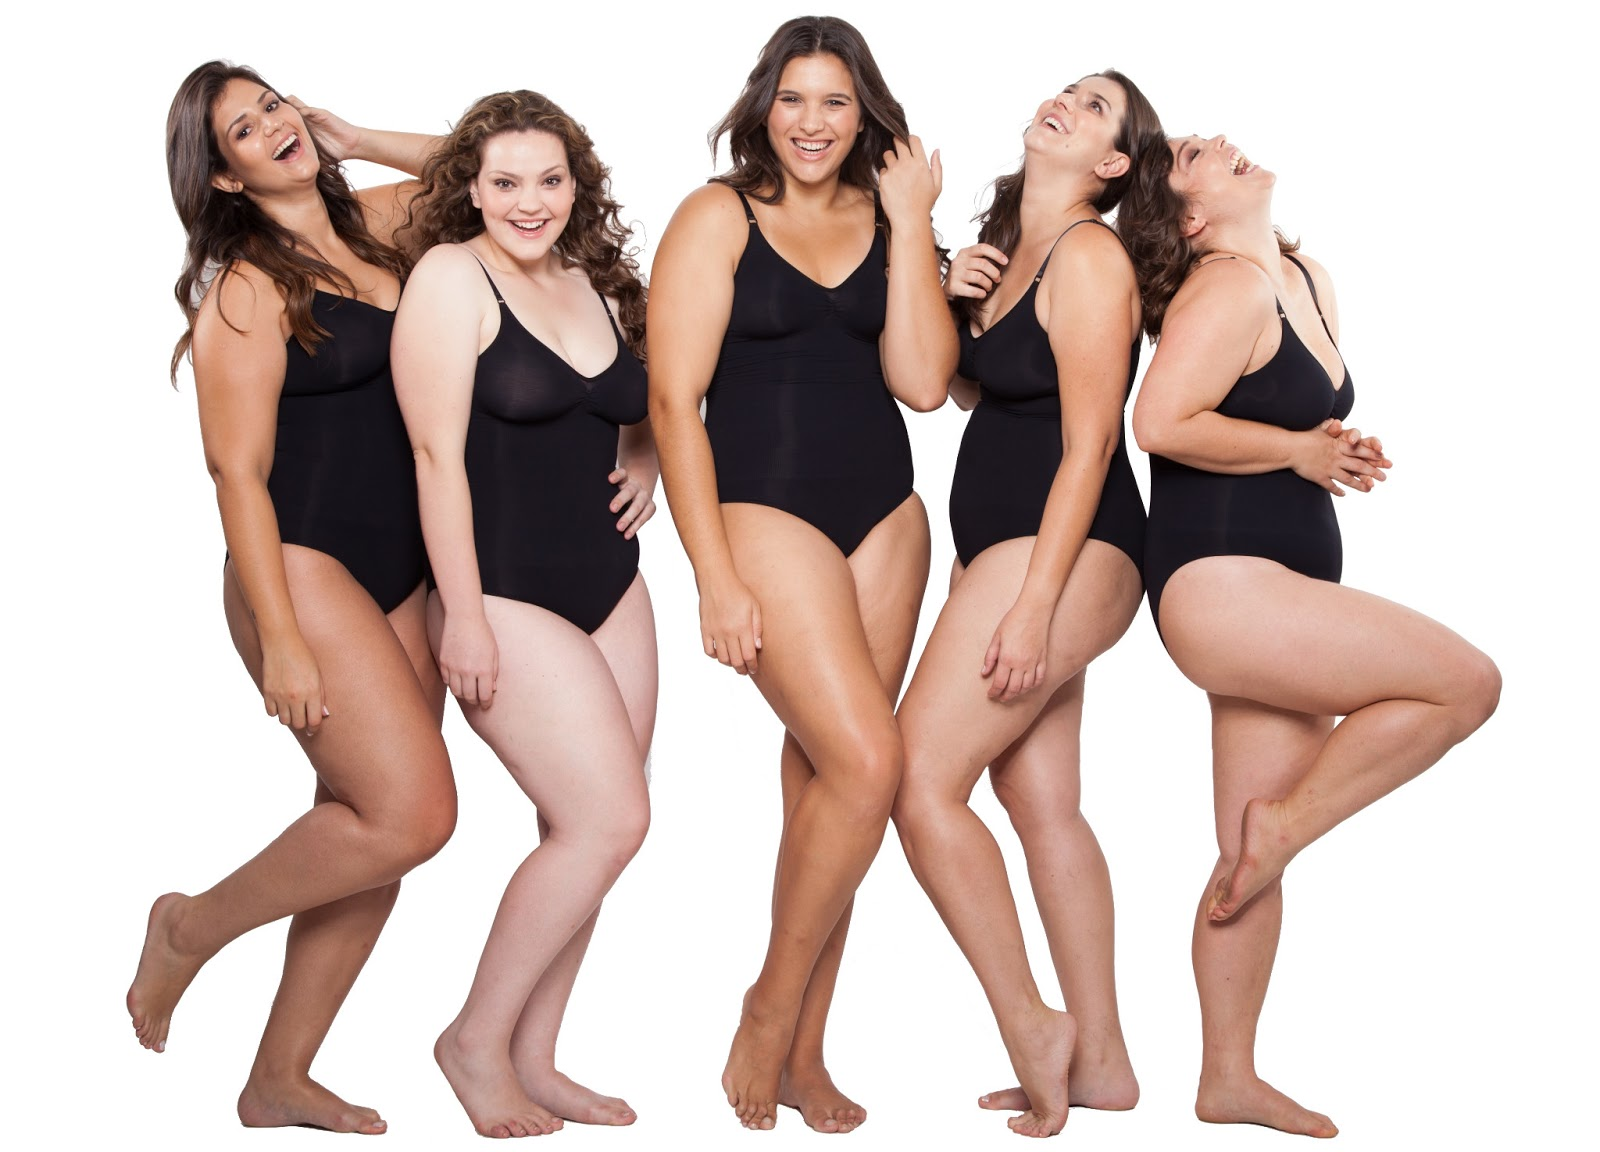 Modeling plus size has greater positive impact in society